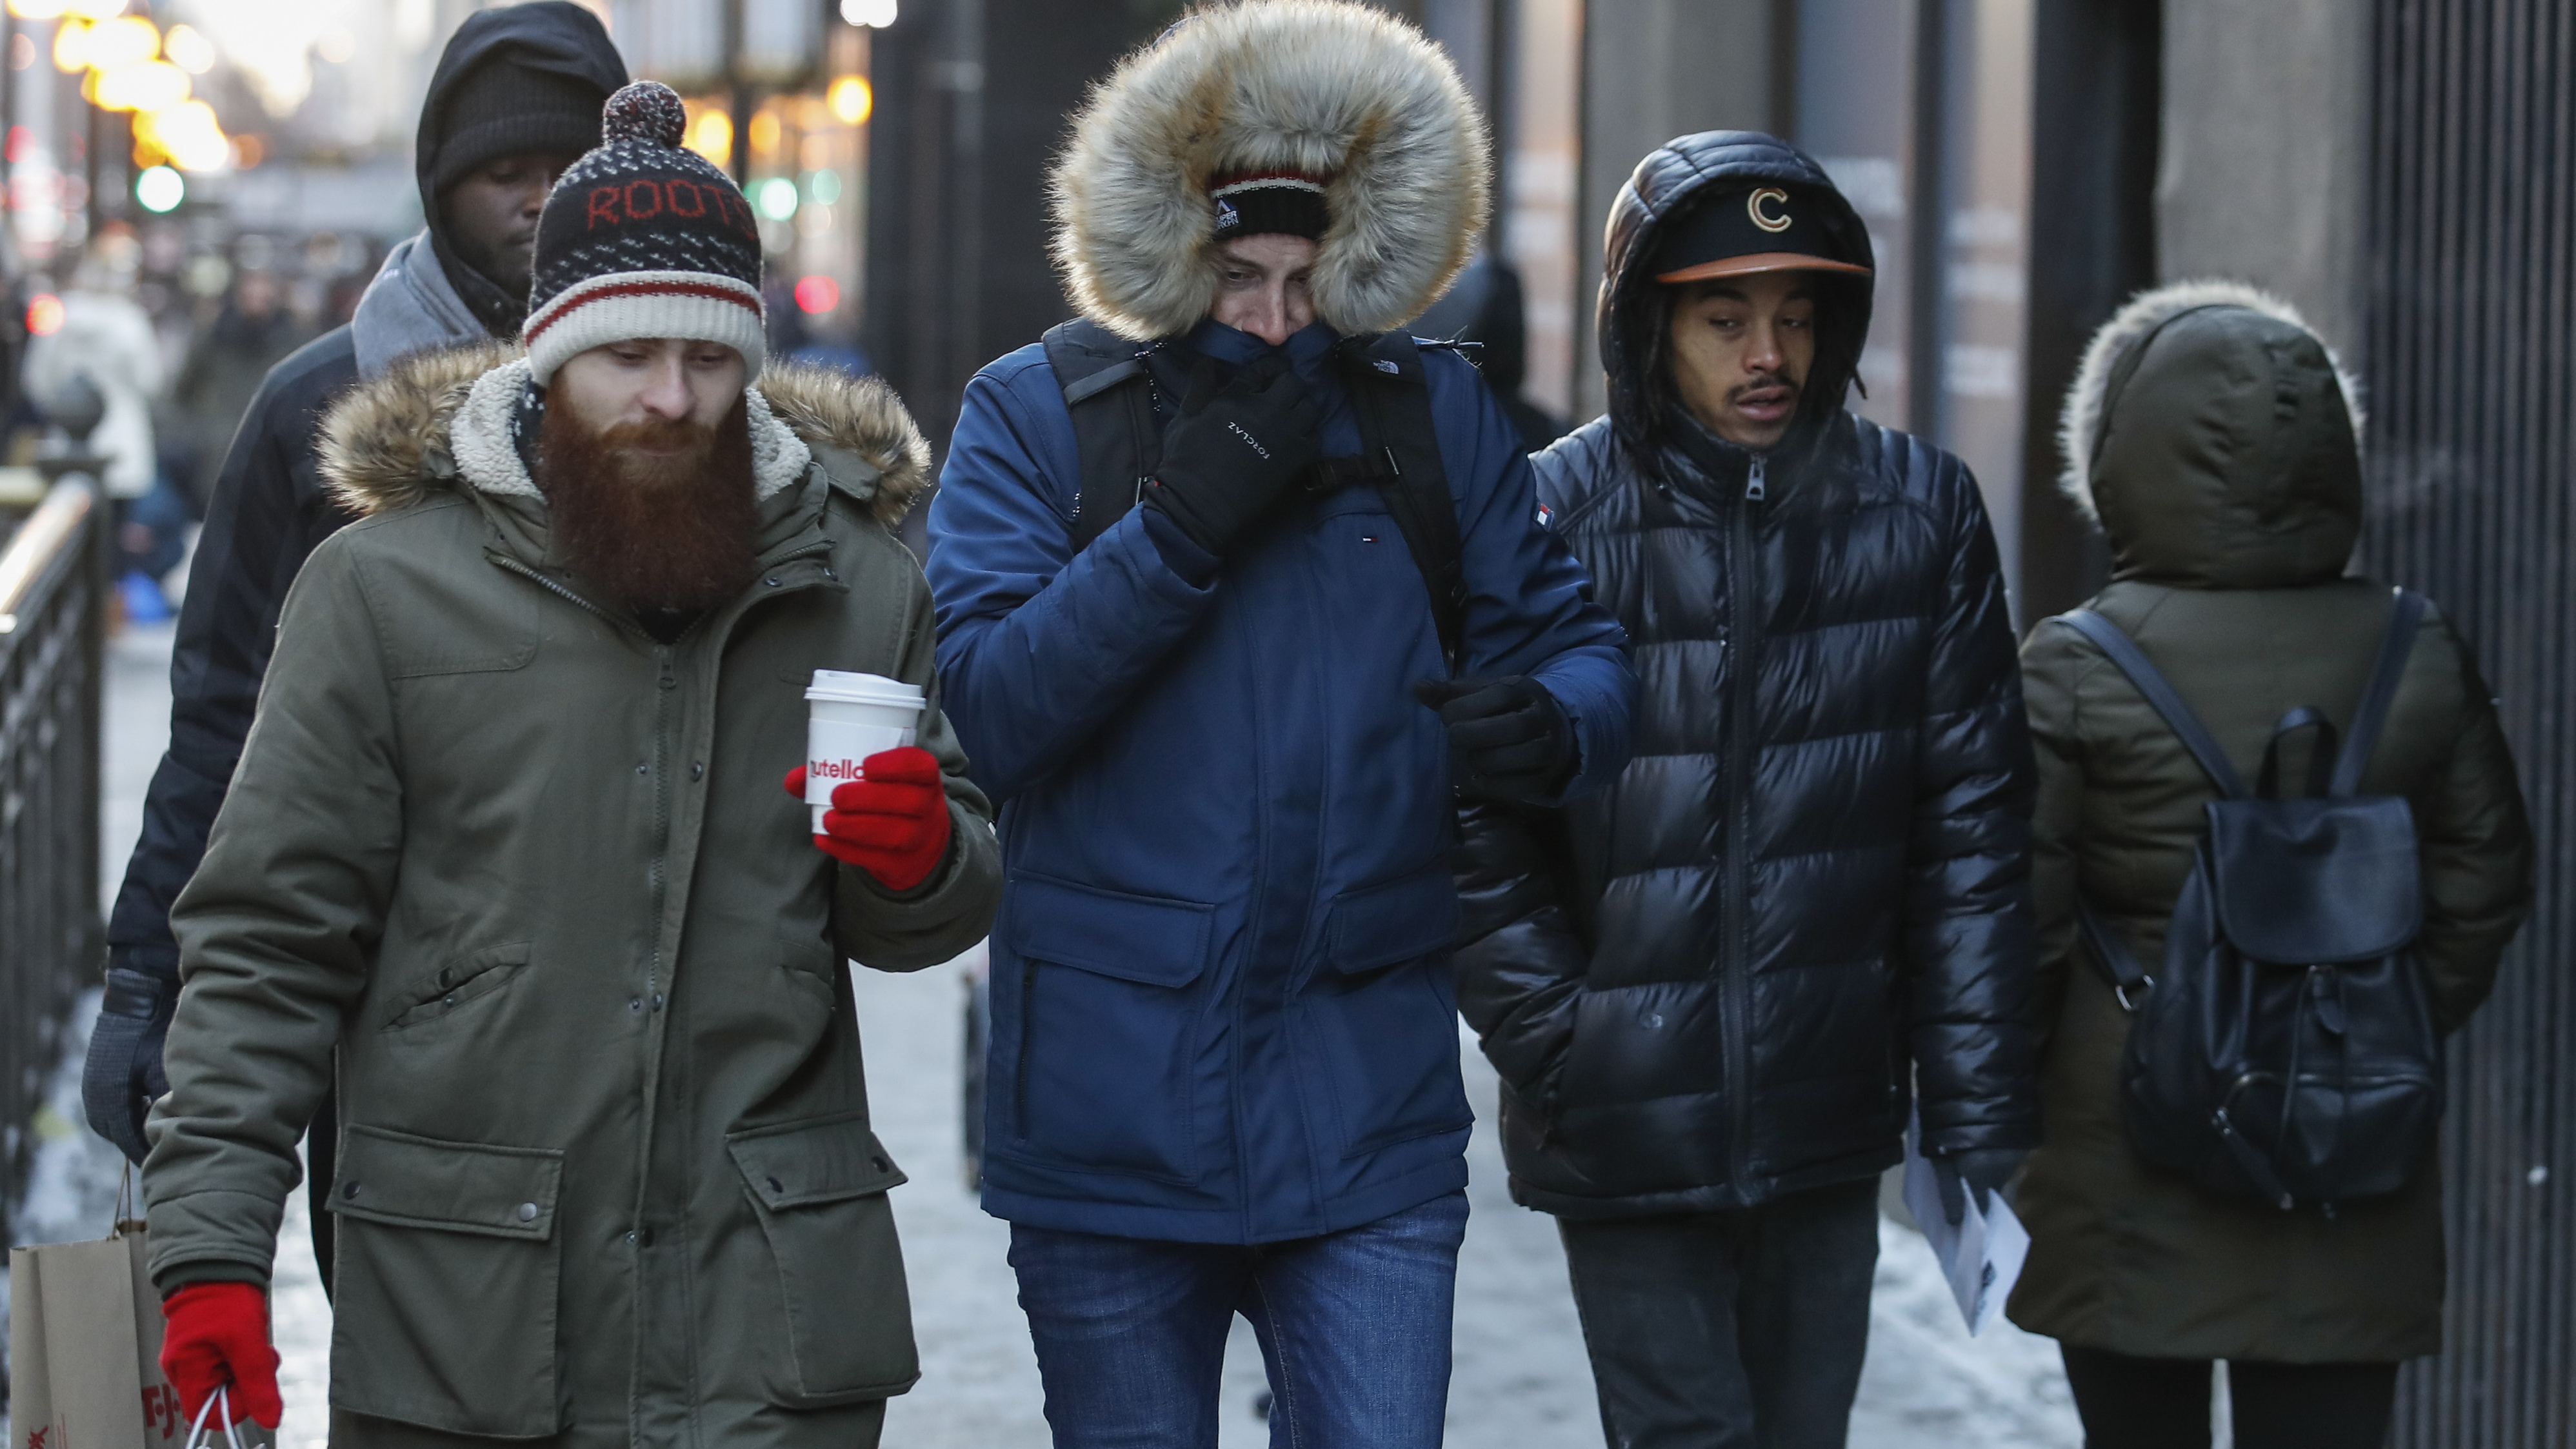 Pedestrians walk along Michigan Avenue in Chicago this week. Bitter cold is hitting much of the Northern half of the U.S., with temperatures dipping into the single digits and below zero. The extremely frigid weather is expected to last for days.